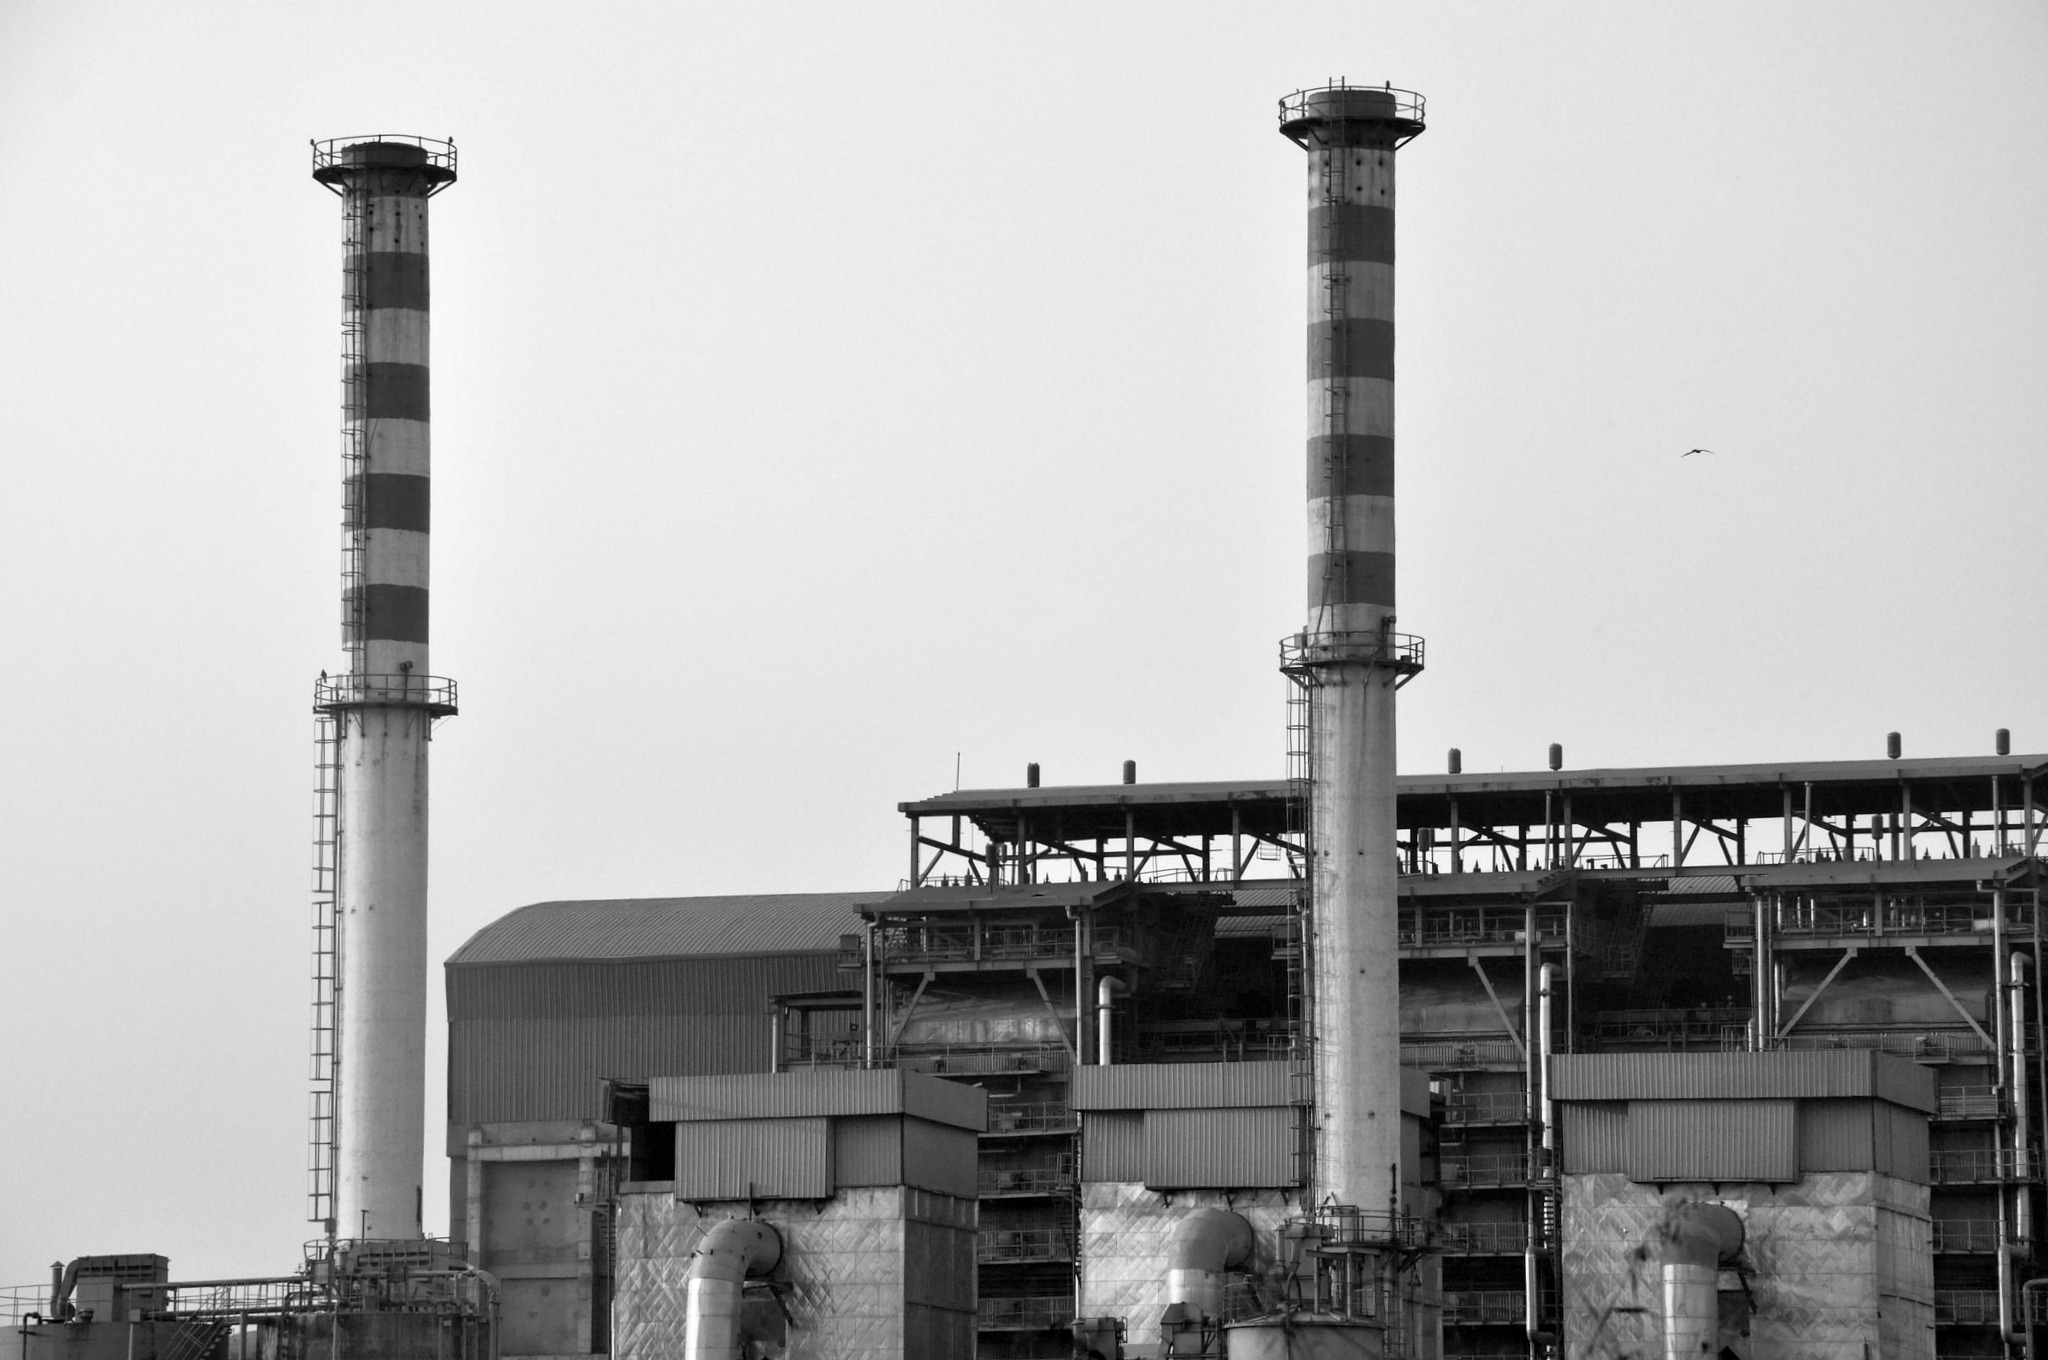 The Okhla waste-to-energy incinerator. Credit: Flickr/IndiaWaterPortal, CC BY 2.0